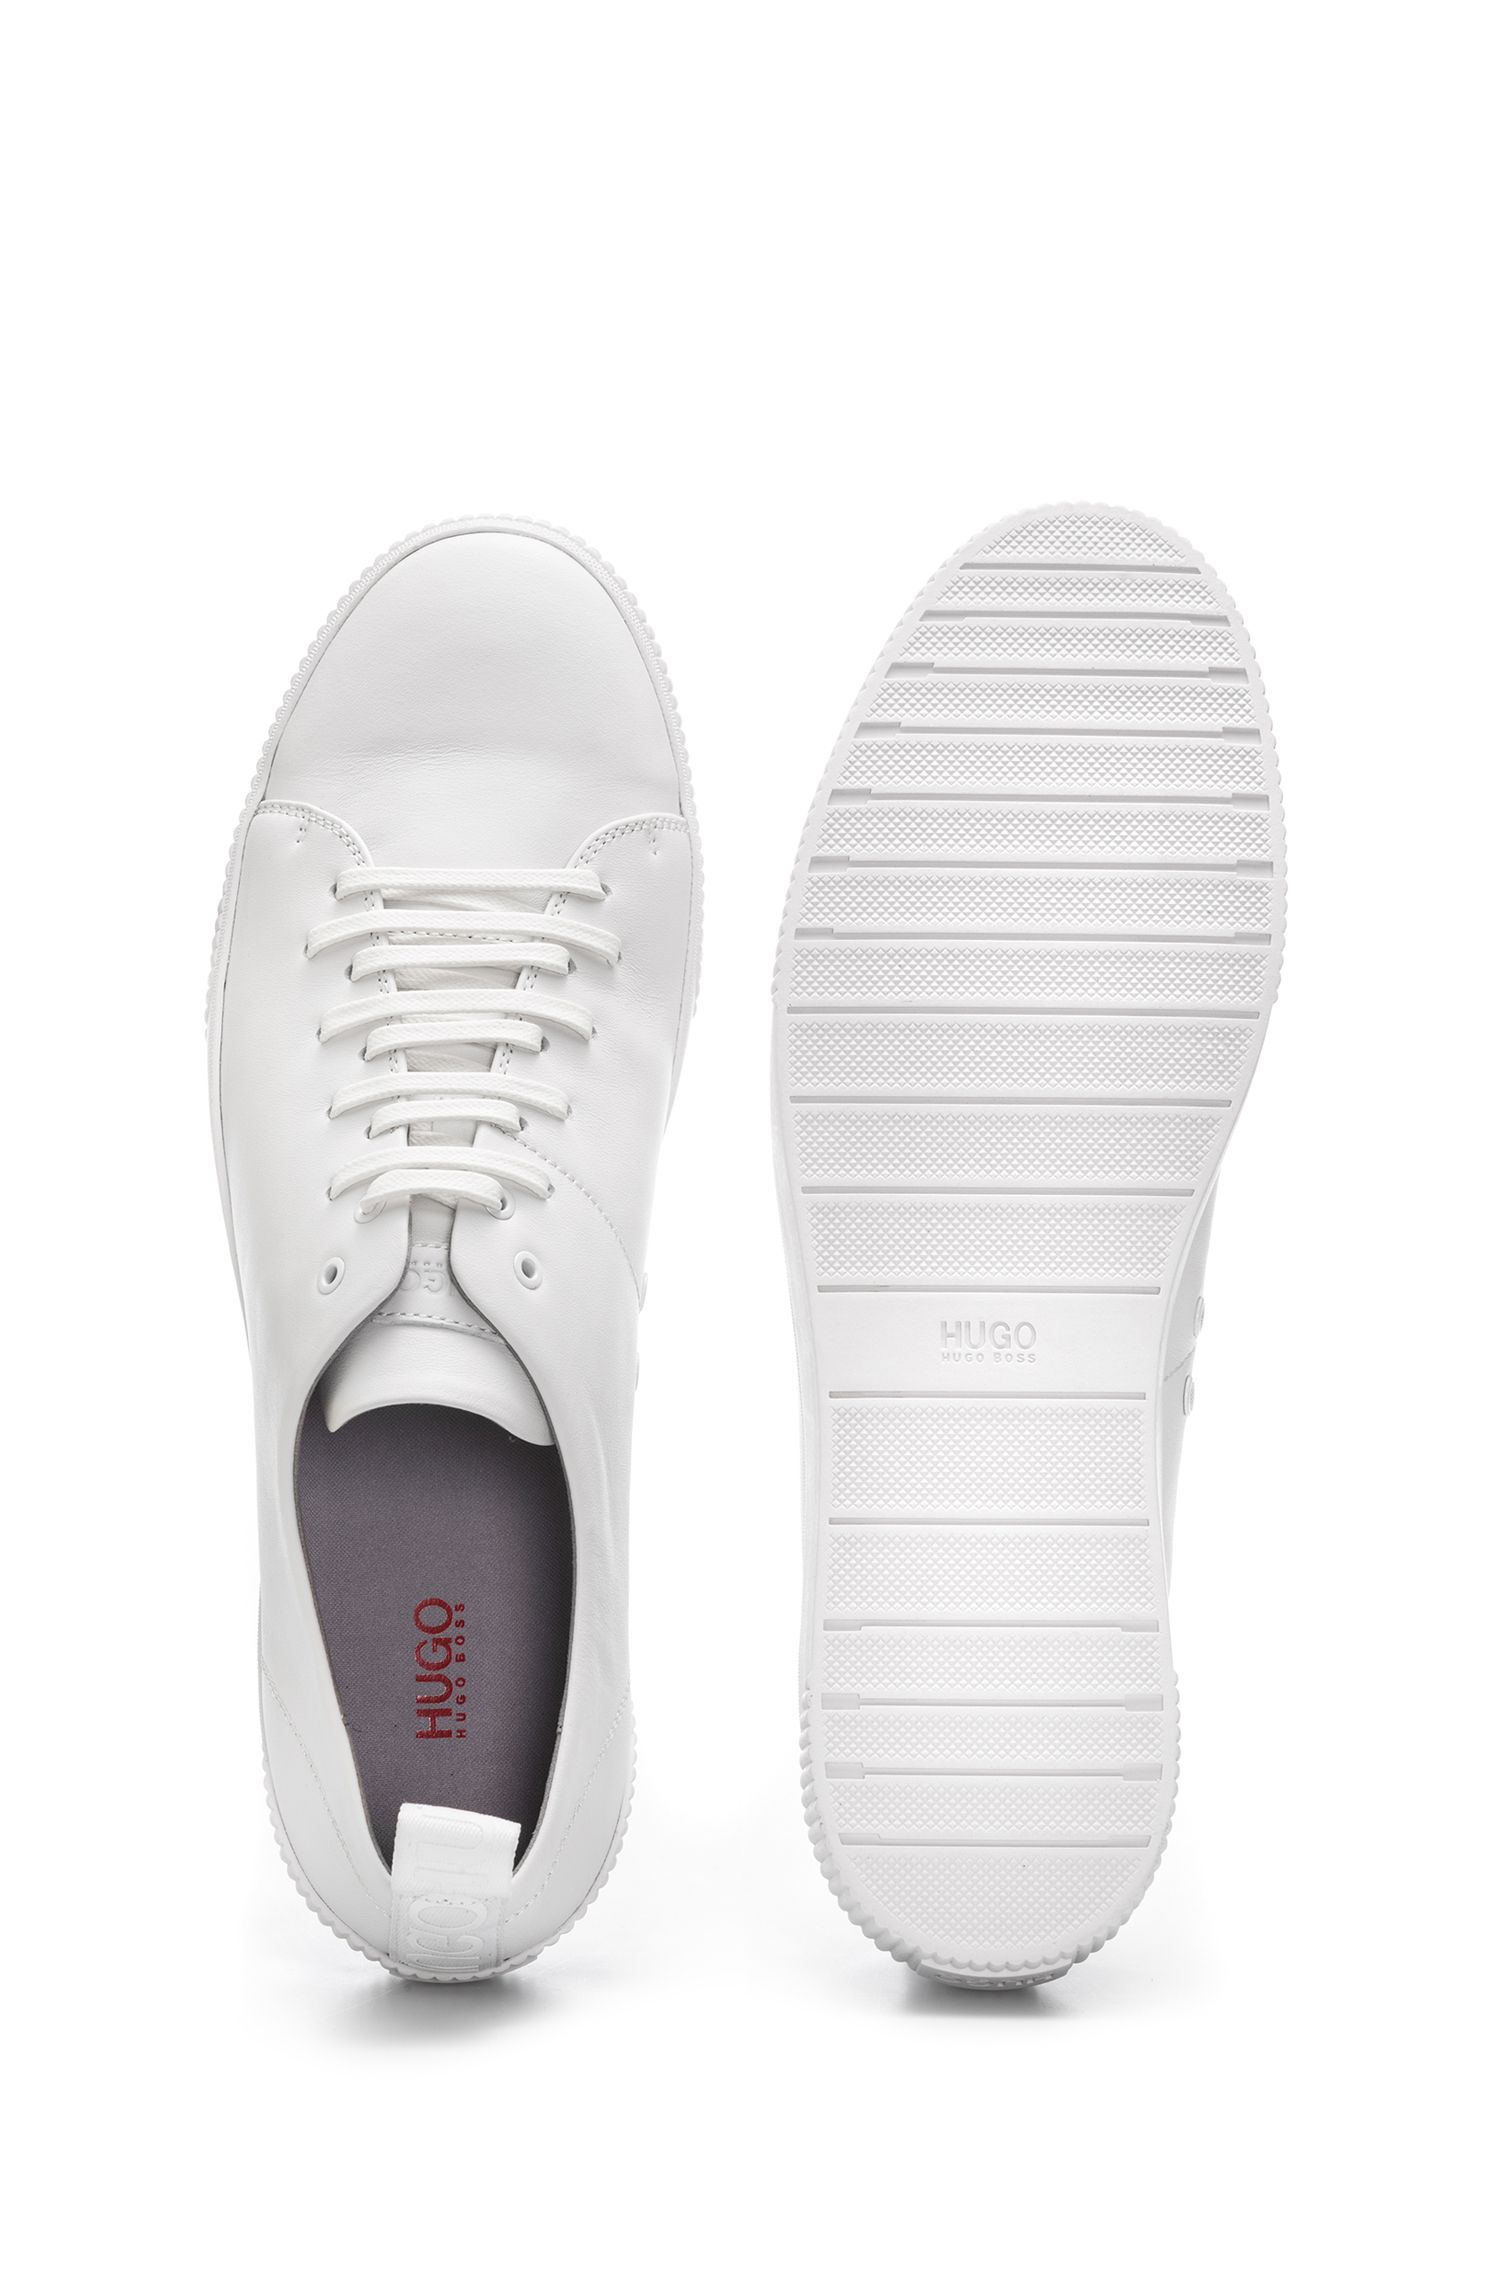 Low-top sneakers in nappa leather with logo detail